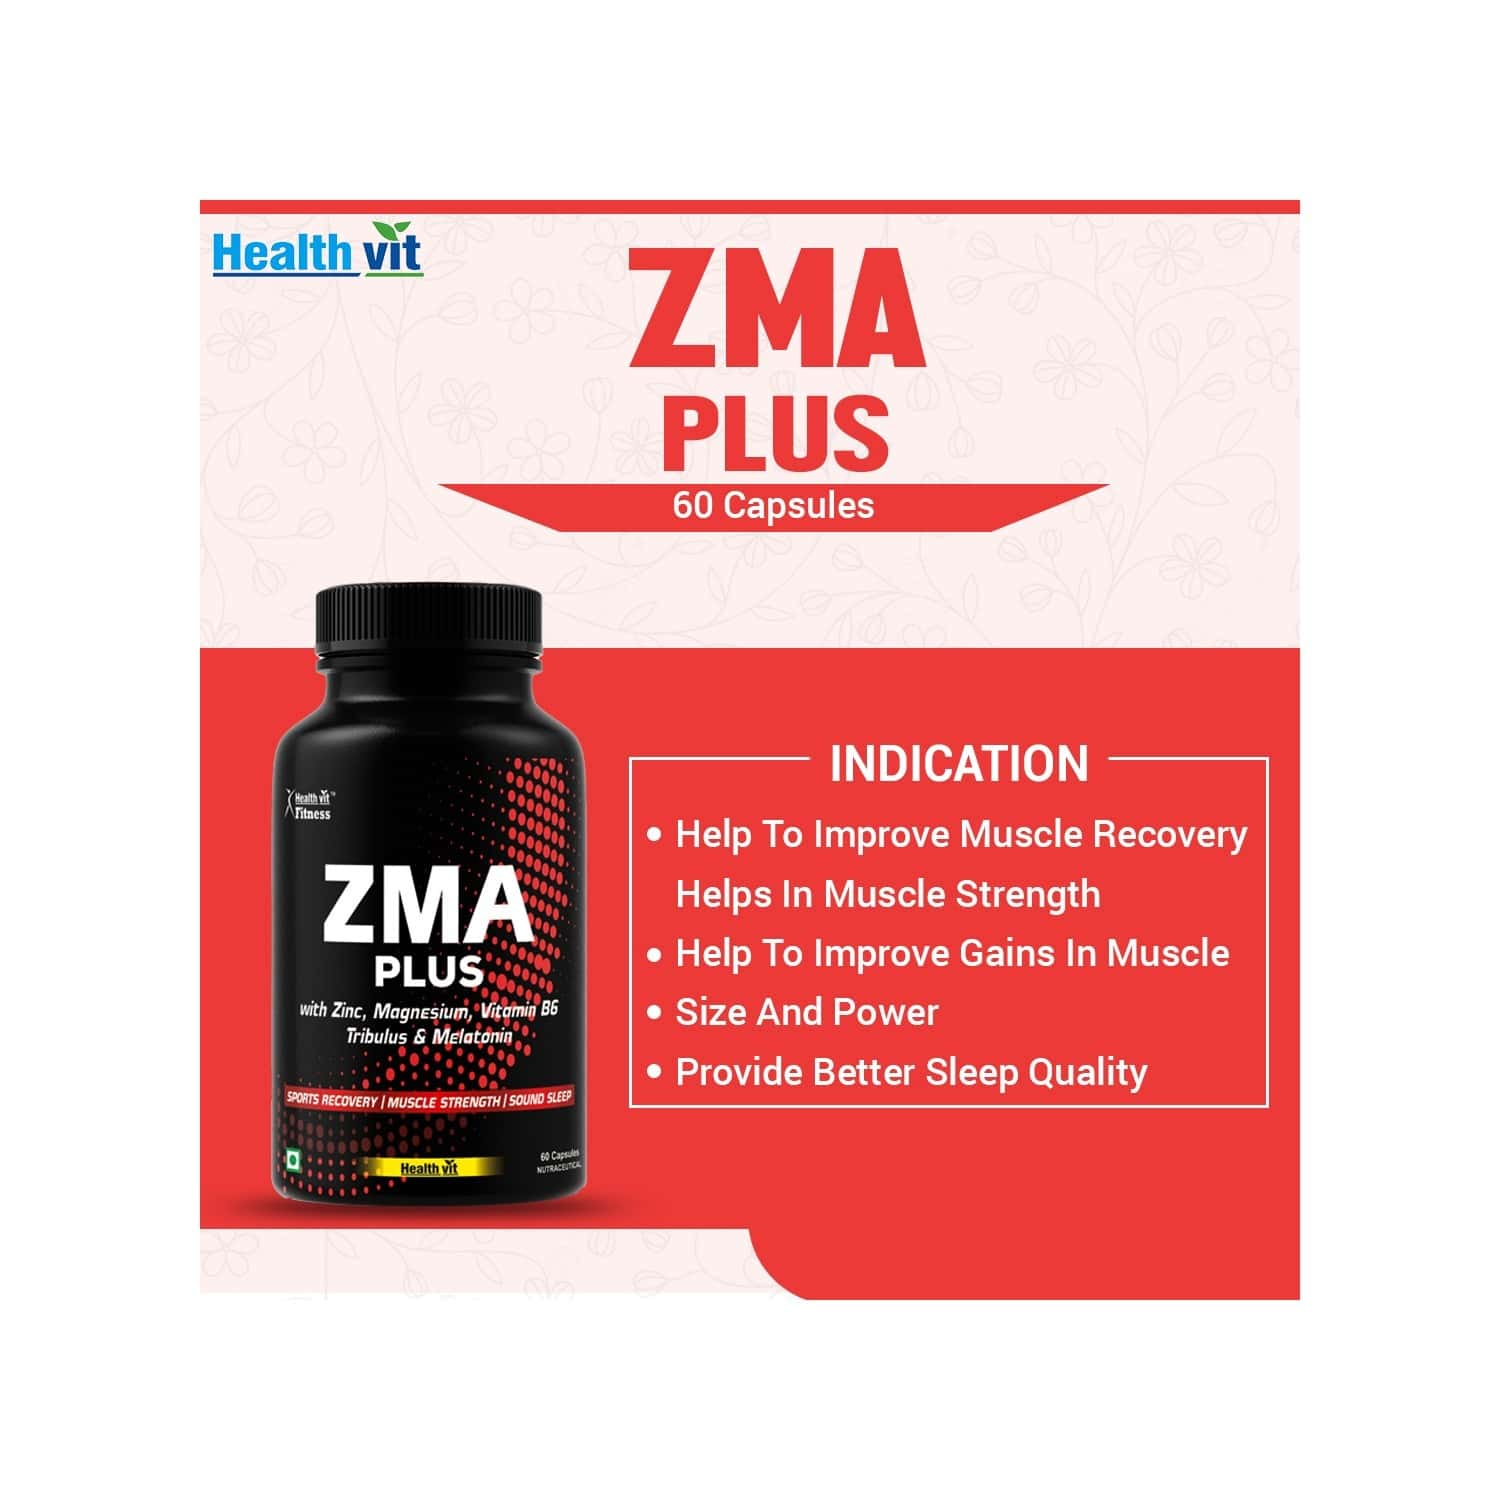 Healthvit Fitness Triple Strength Zma Plus, Sports Recovery & Sleep Support Supplement With Zinc, Magnesium, Vitamin B6, Tribulus & Melatonin 60 Capsules